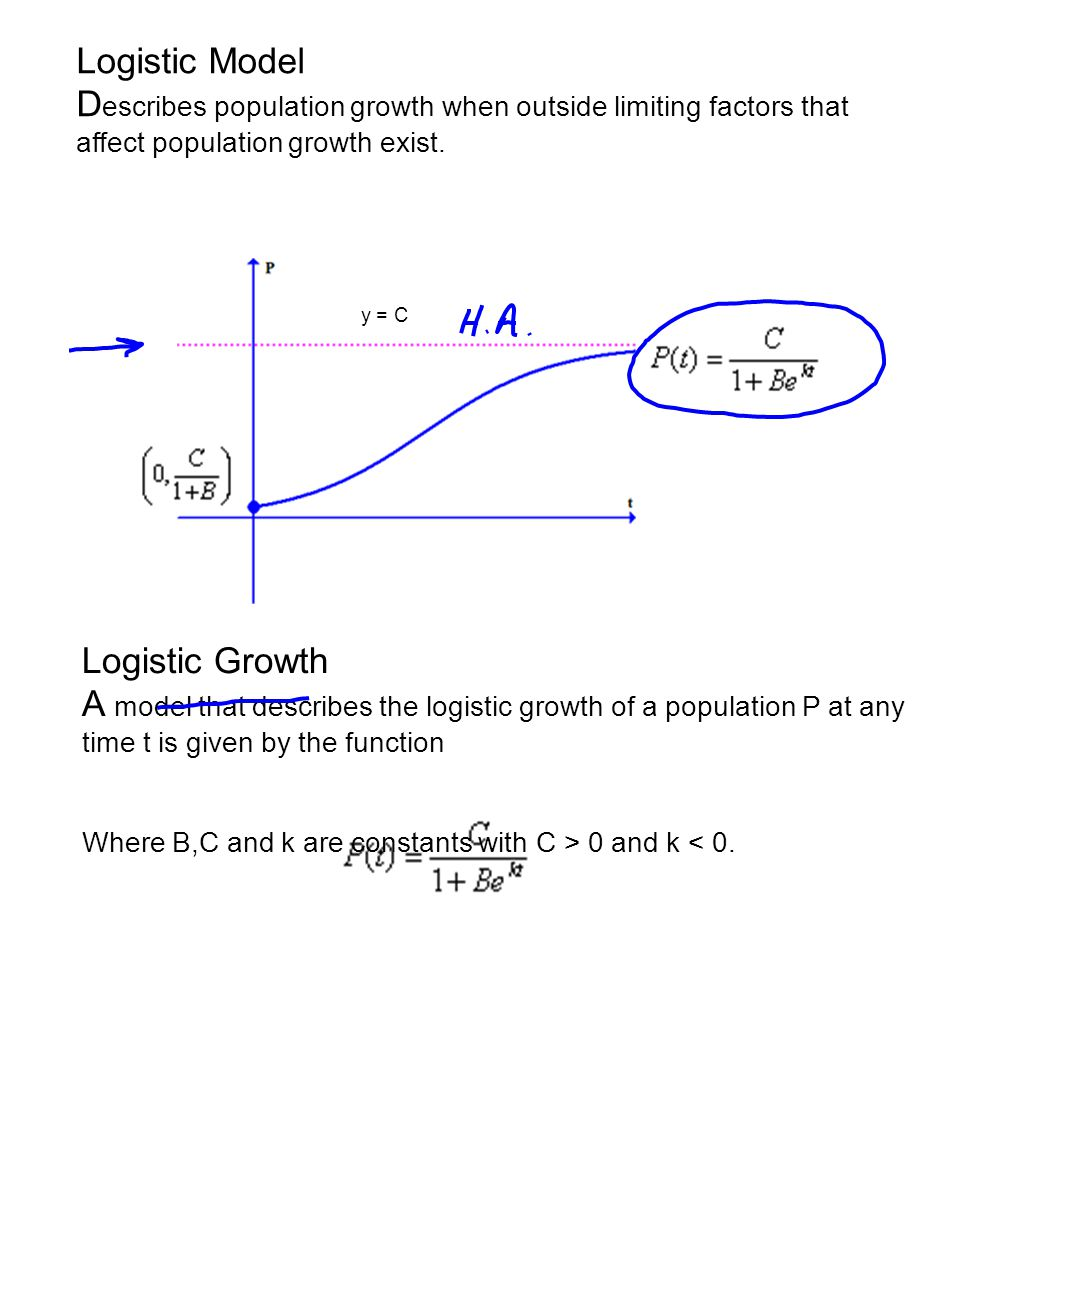 Logistic Model Describes population growth when outside limiting factors that affect population growth exist.